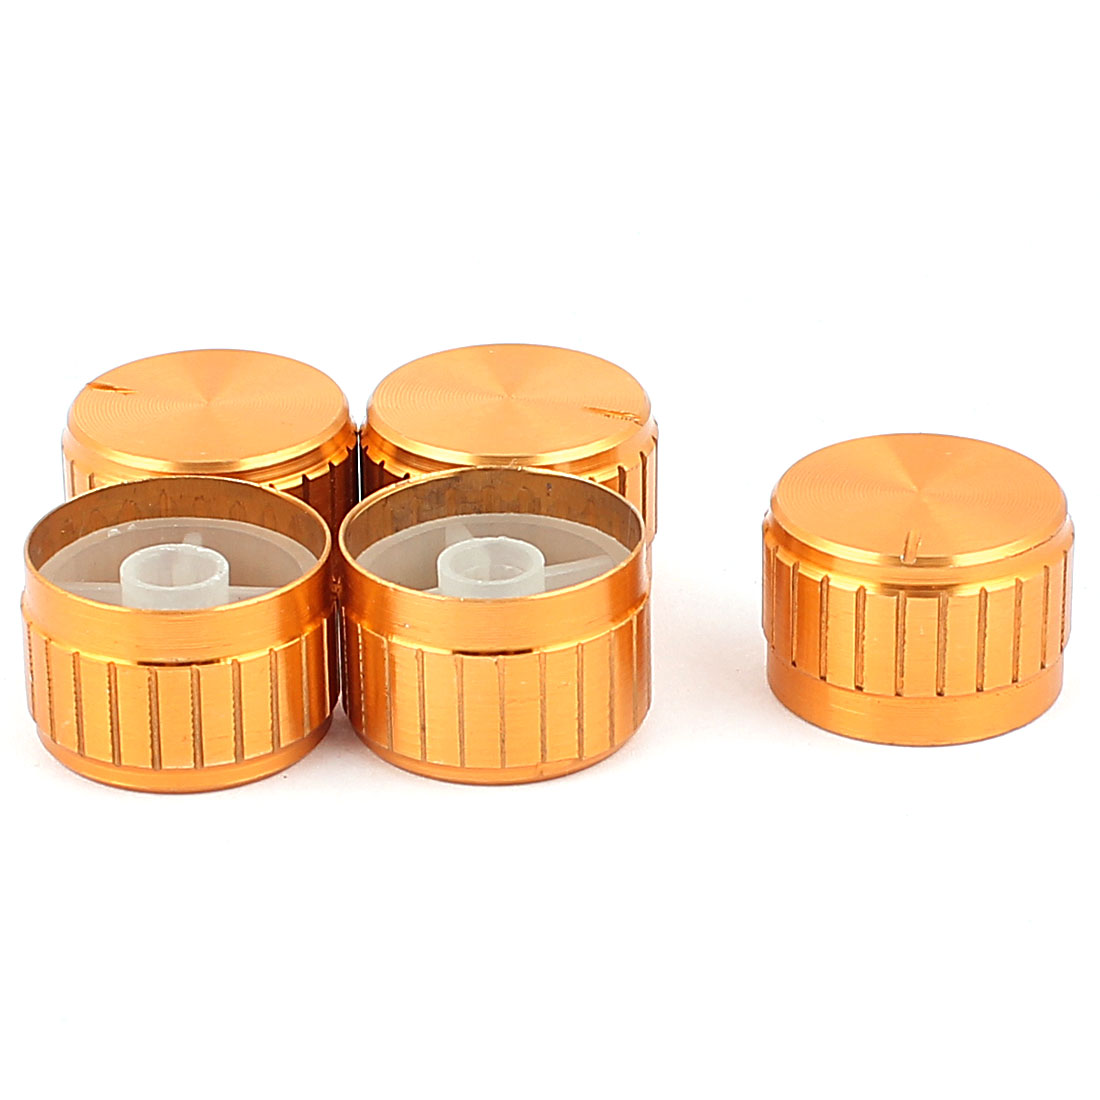 5 Pcs 26mm x 6mm Potentiometer Control Switch Volume Cap Aluminium Alloy Knurled Button Gold Tone